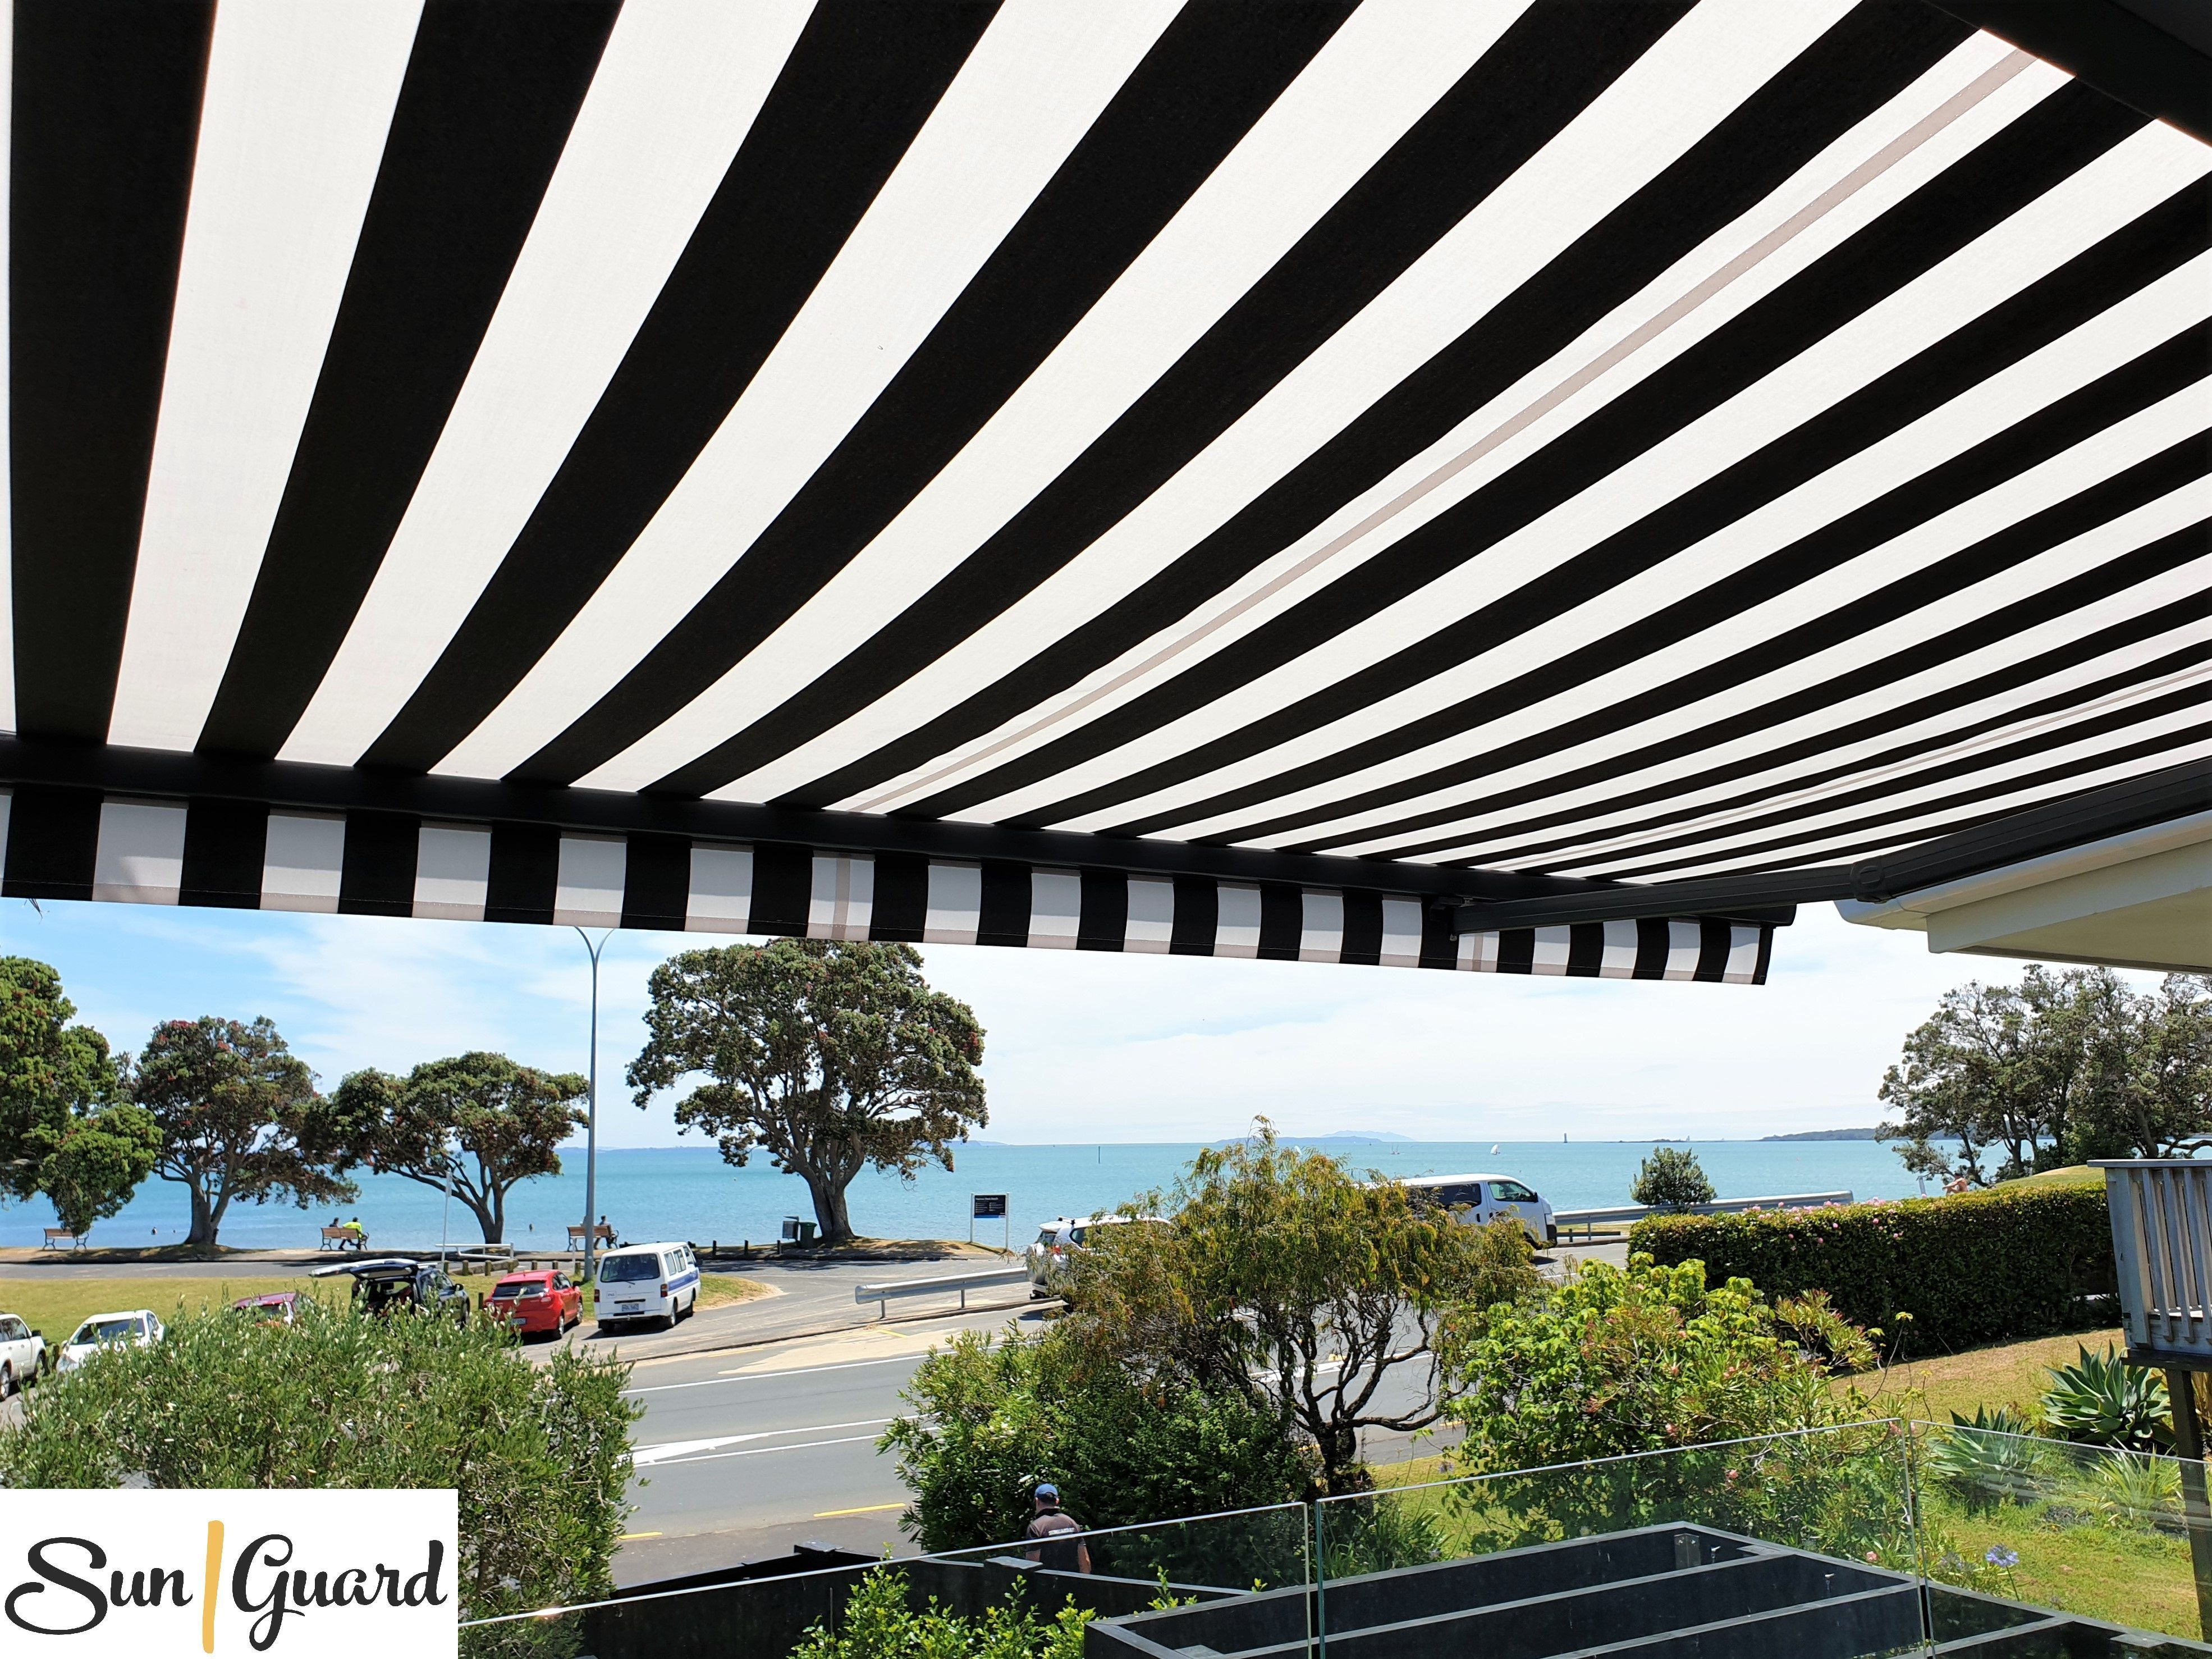 One Of Our Recent Projects Horizon Retractable Awning In Narrow Neck Auckland This Folding Arm Awning Provides Ro In 2020 Retractable Awning Awning Installation